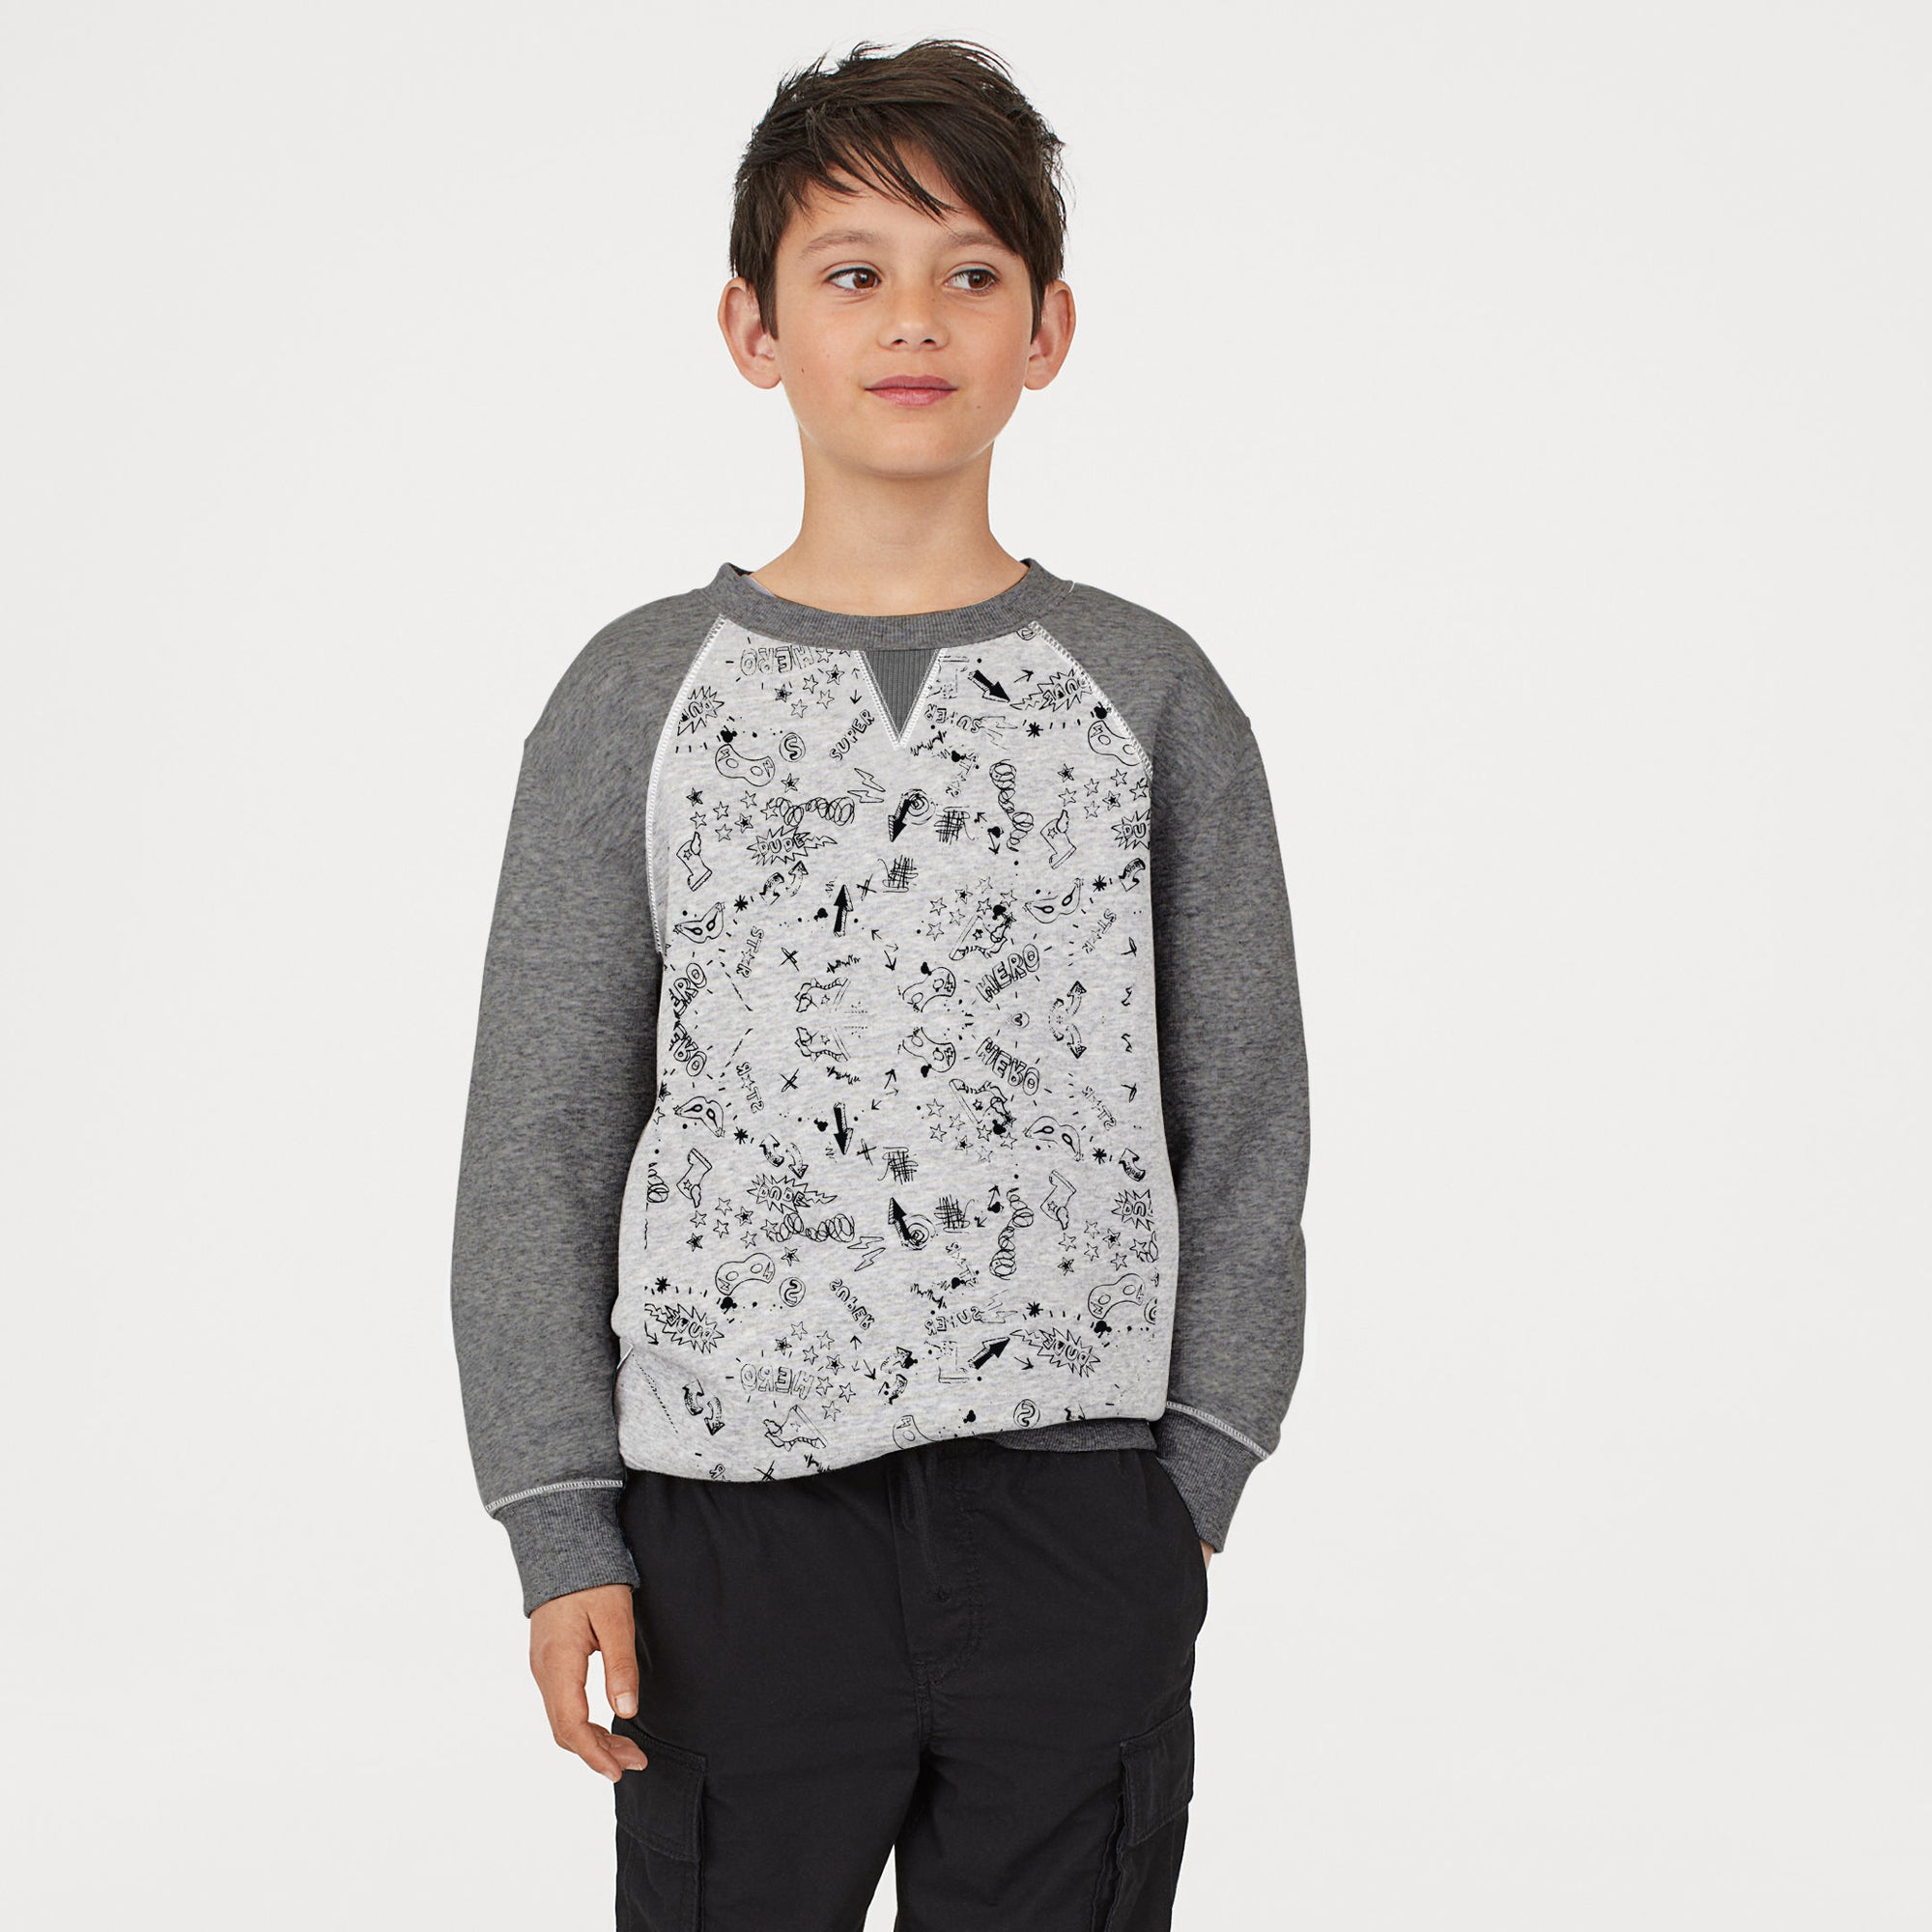 Next Fleece Crew Neck Raglan Sleeve Sweatshirt For Kids-Charcoal & Grey With Print-SP823